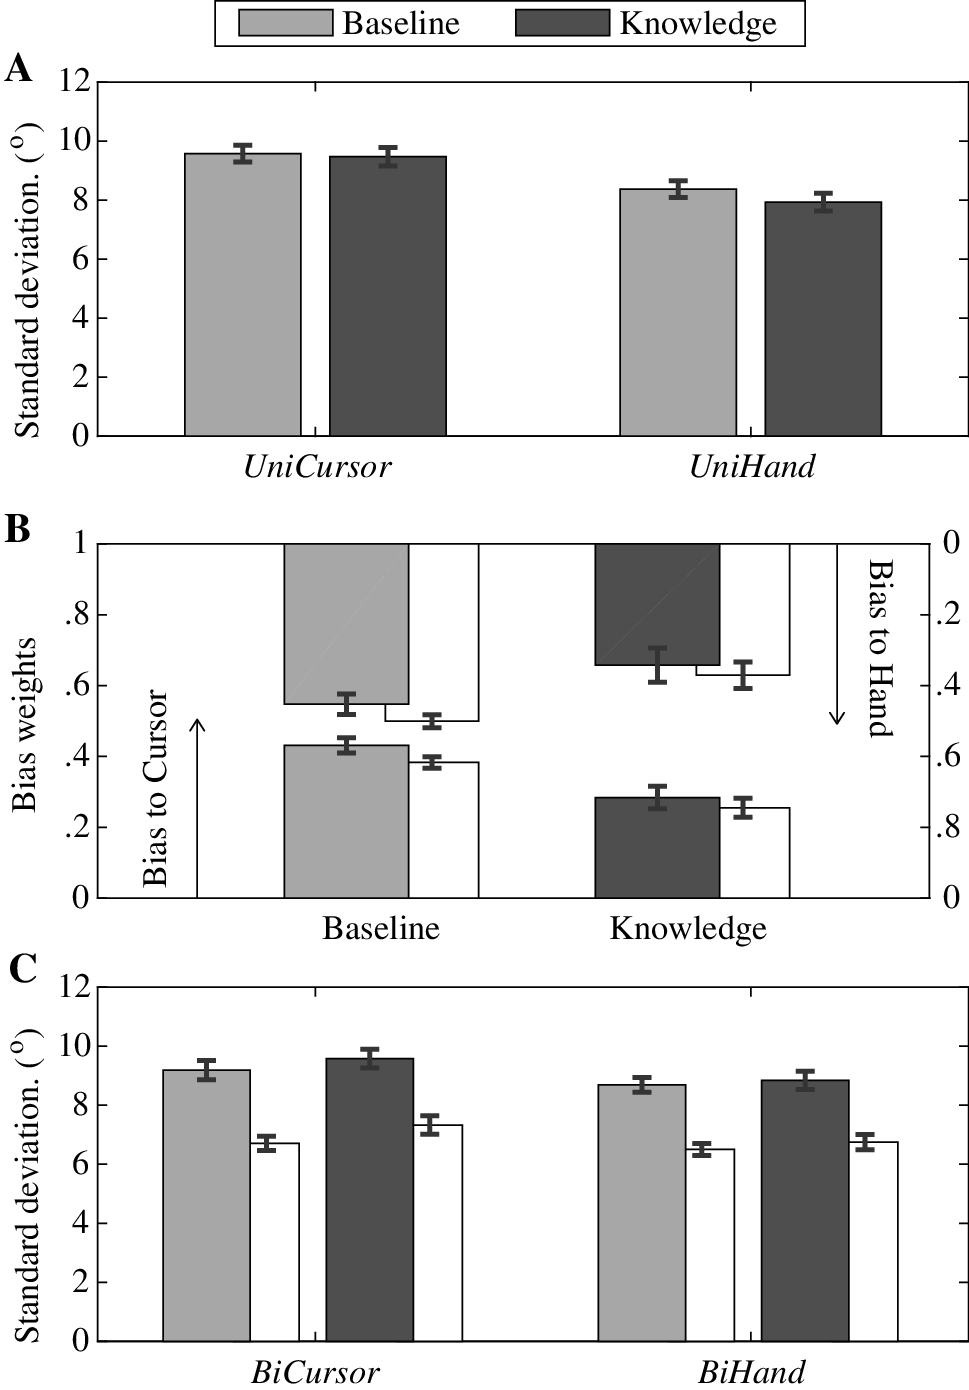 Explicit knowledge of sensory non-redundancy can reduce the